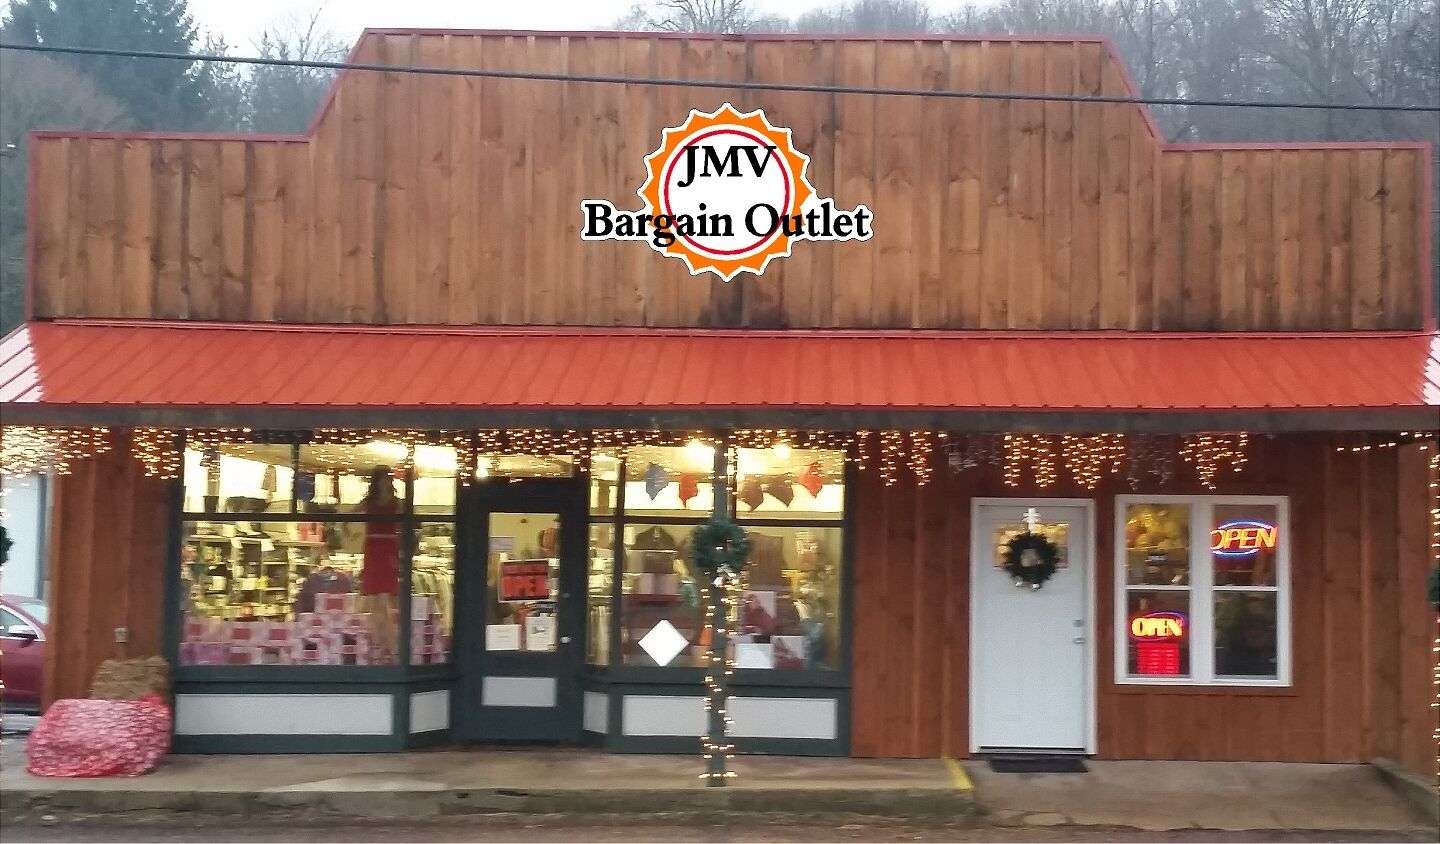 JMV Bargain Outlet